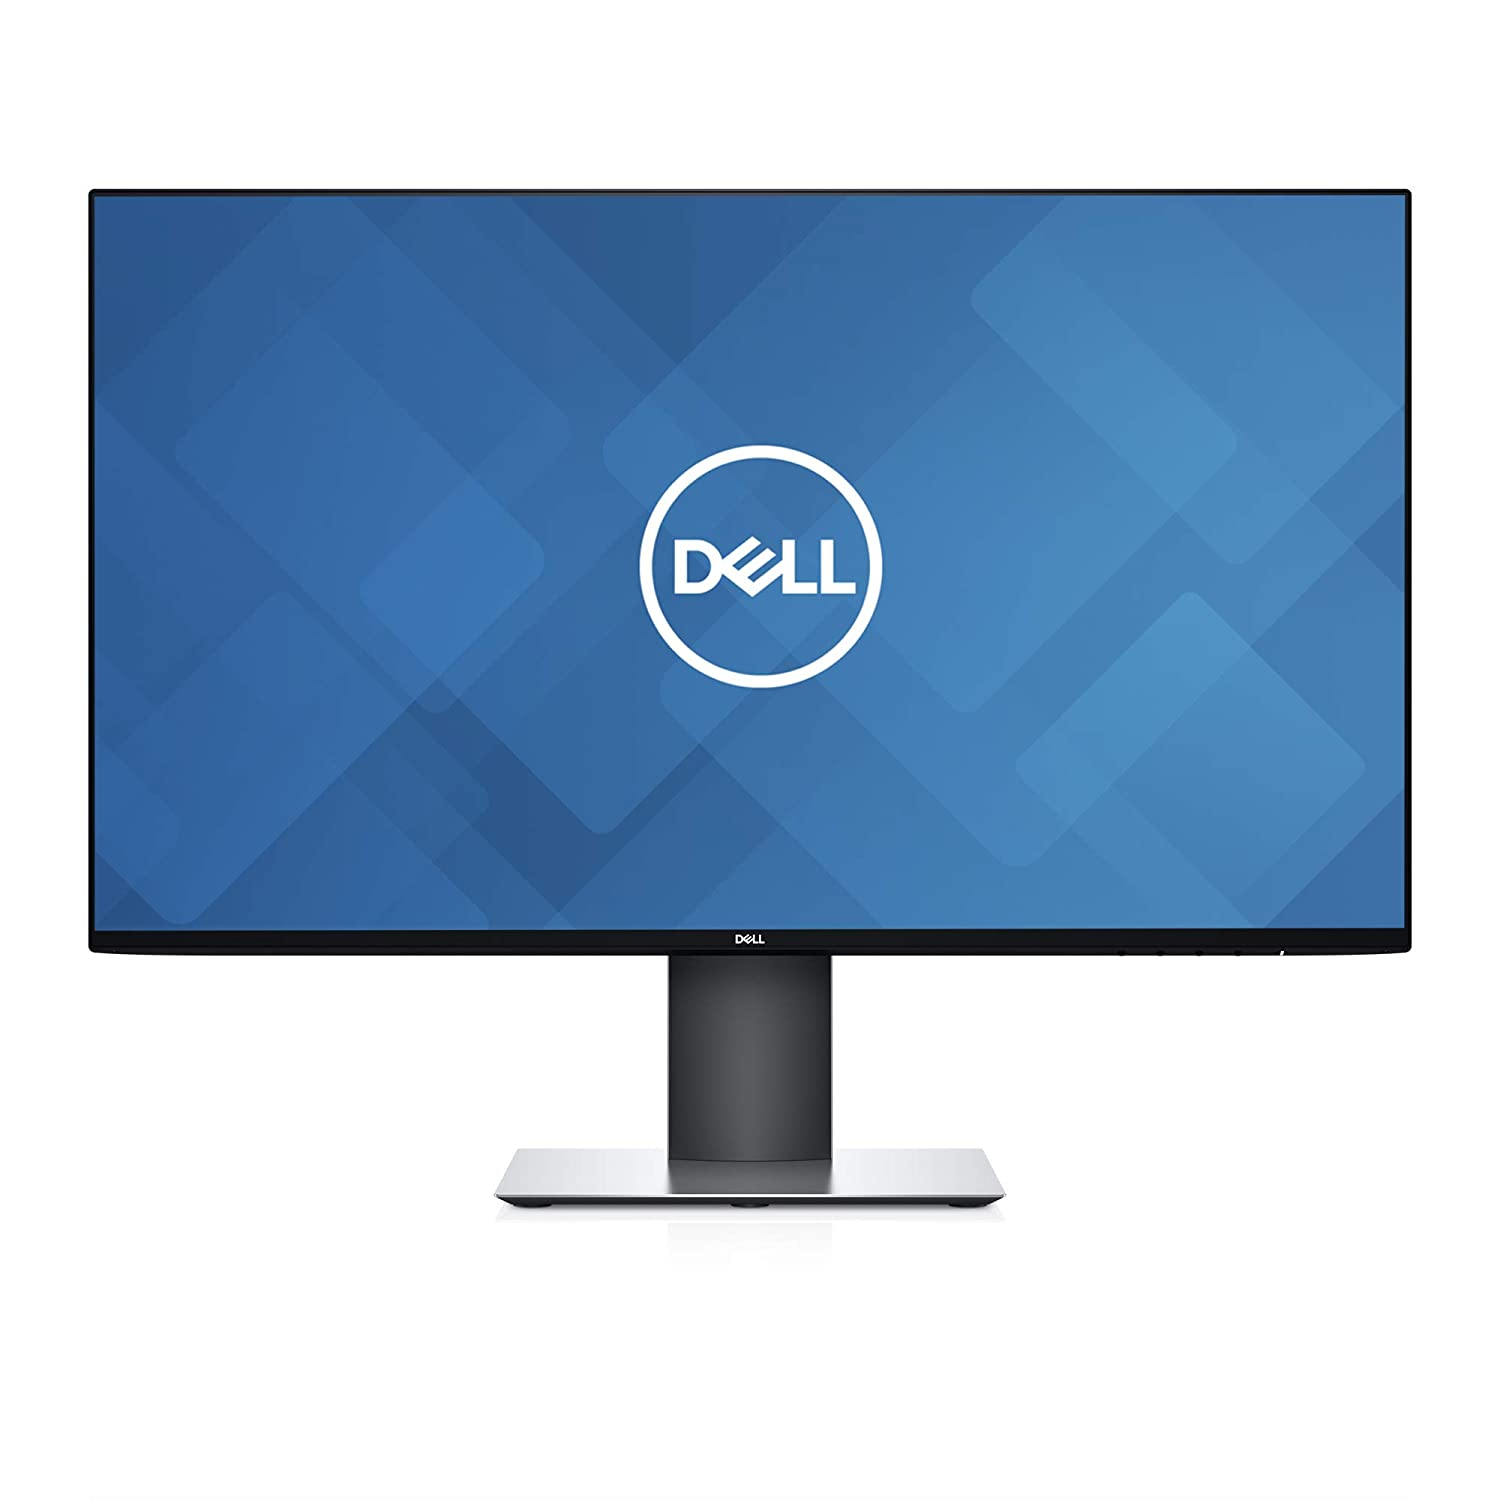 Dell Ultrasharp U2719DX 27-Inch WQHD 2560x1440 Resolution IPS Monitor with Infinity Edge Bezels, Black